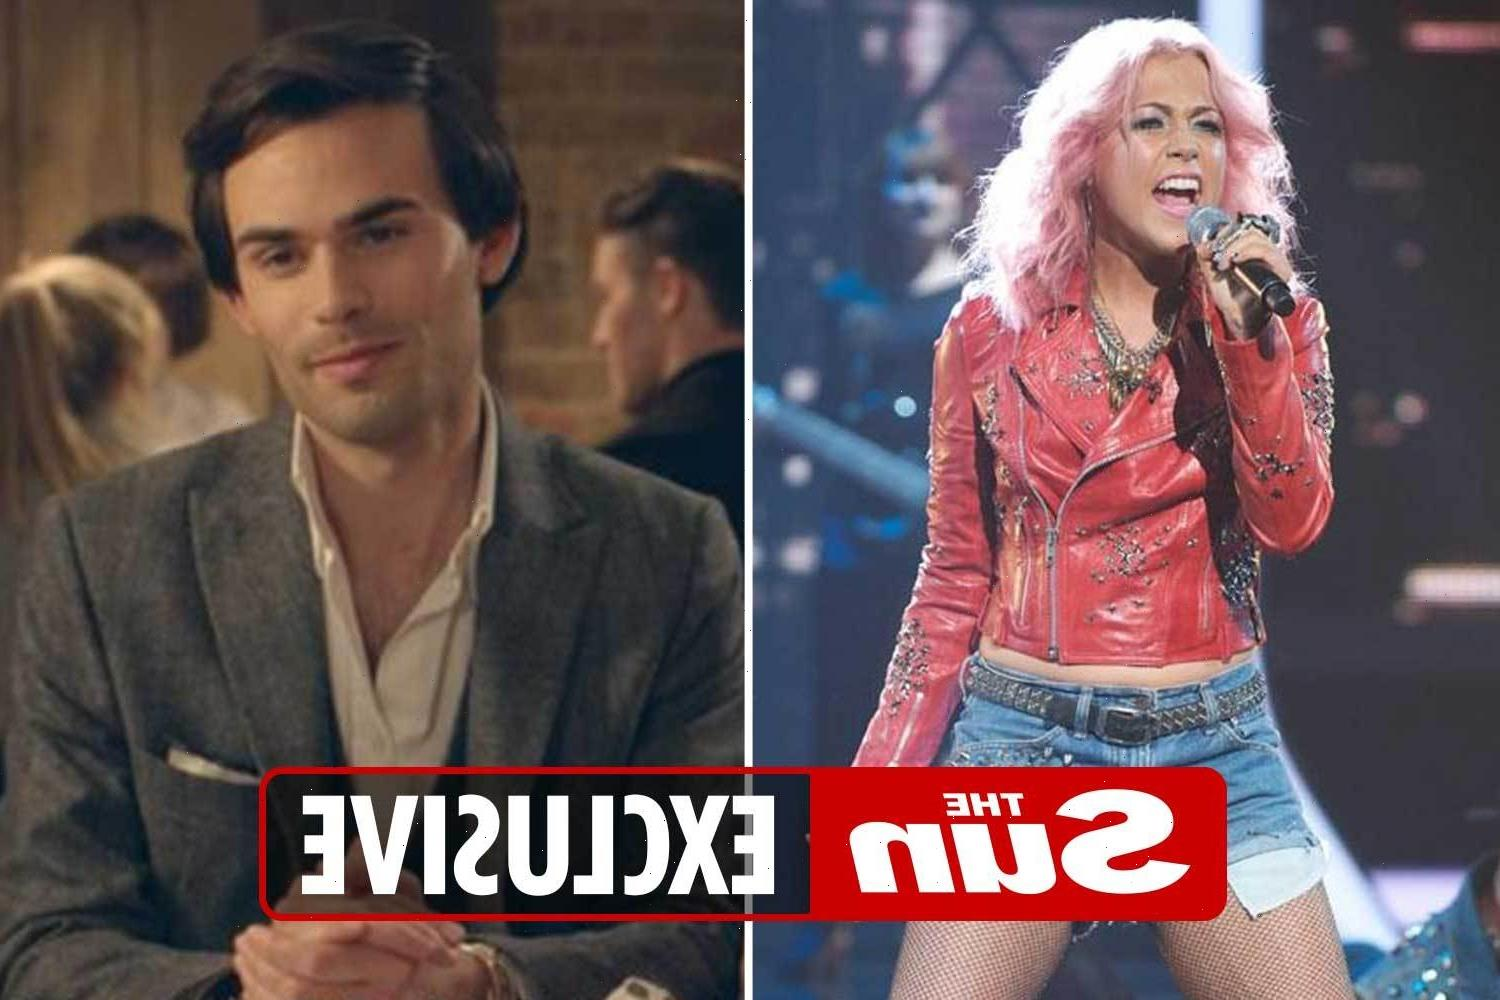 Celebrity Karaoke Club S2 signs up Geordie Shore's Amelia Lily, Made In Chelsea's Mark-Francis and MAFS Australia star